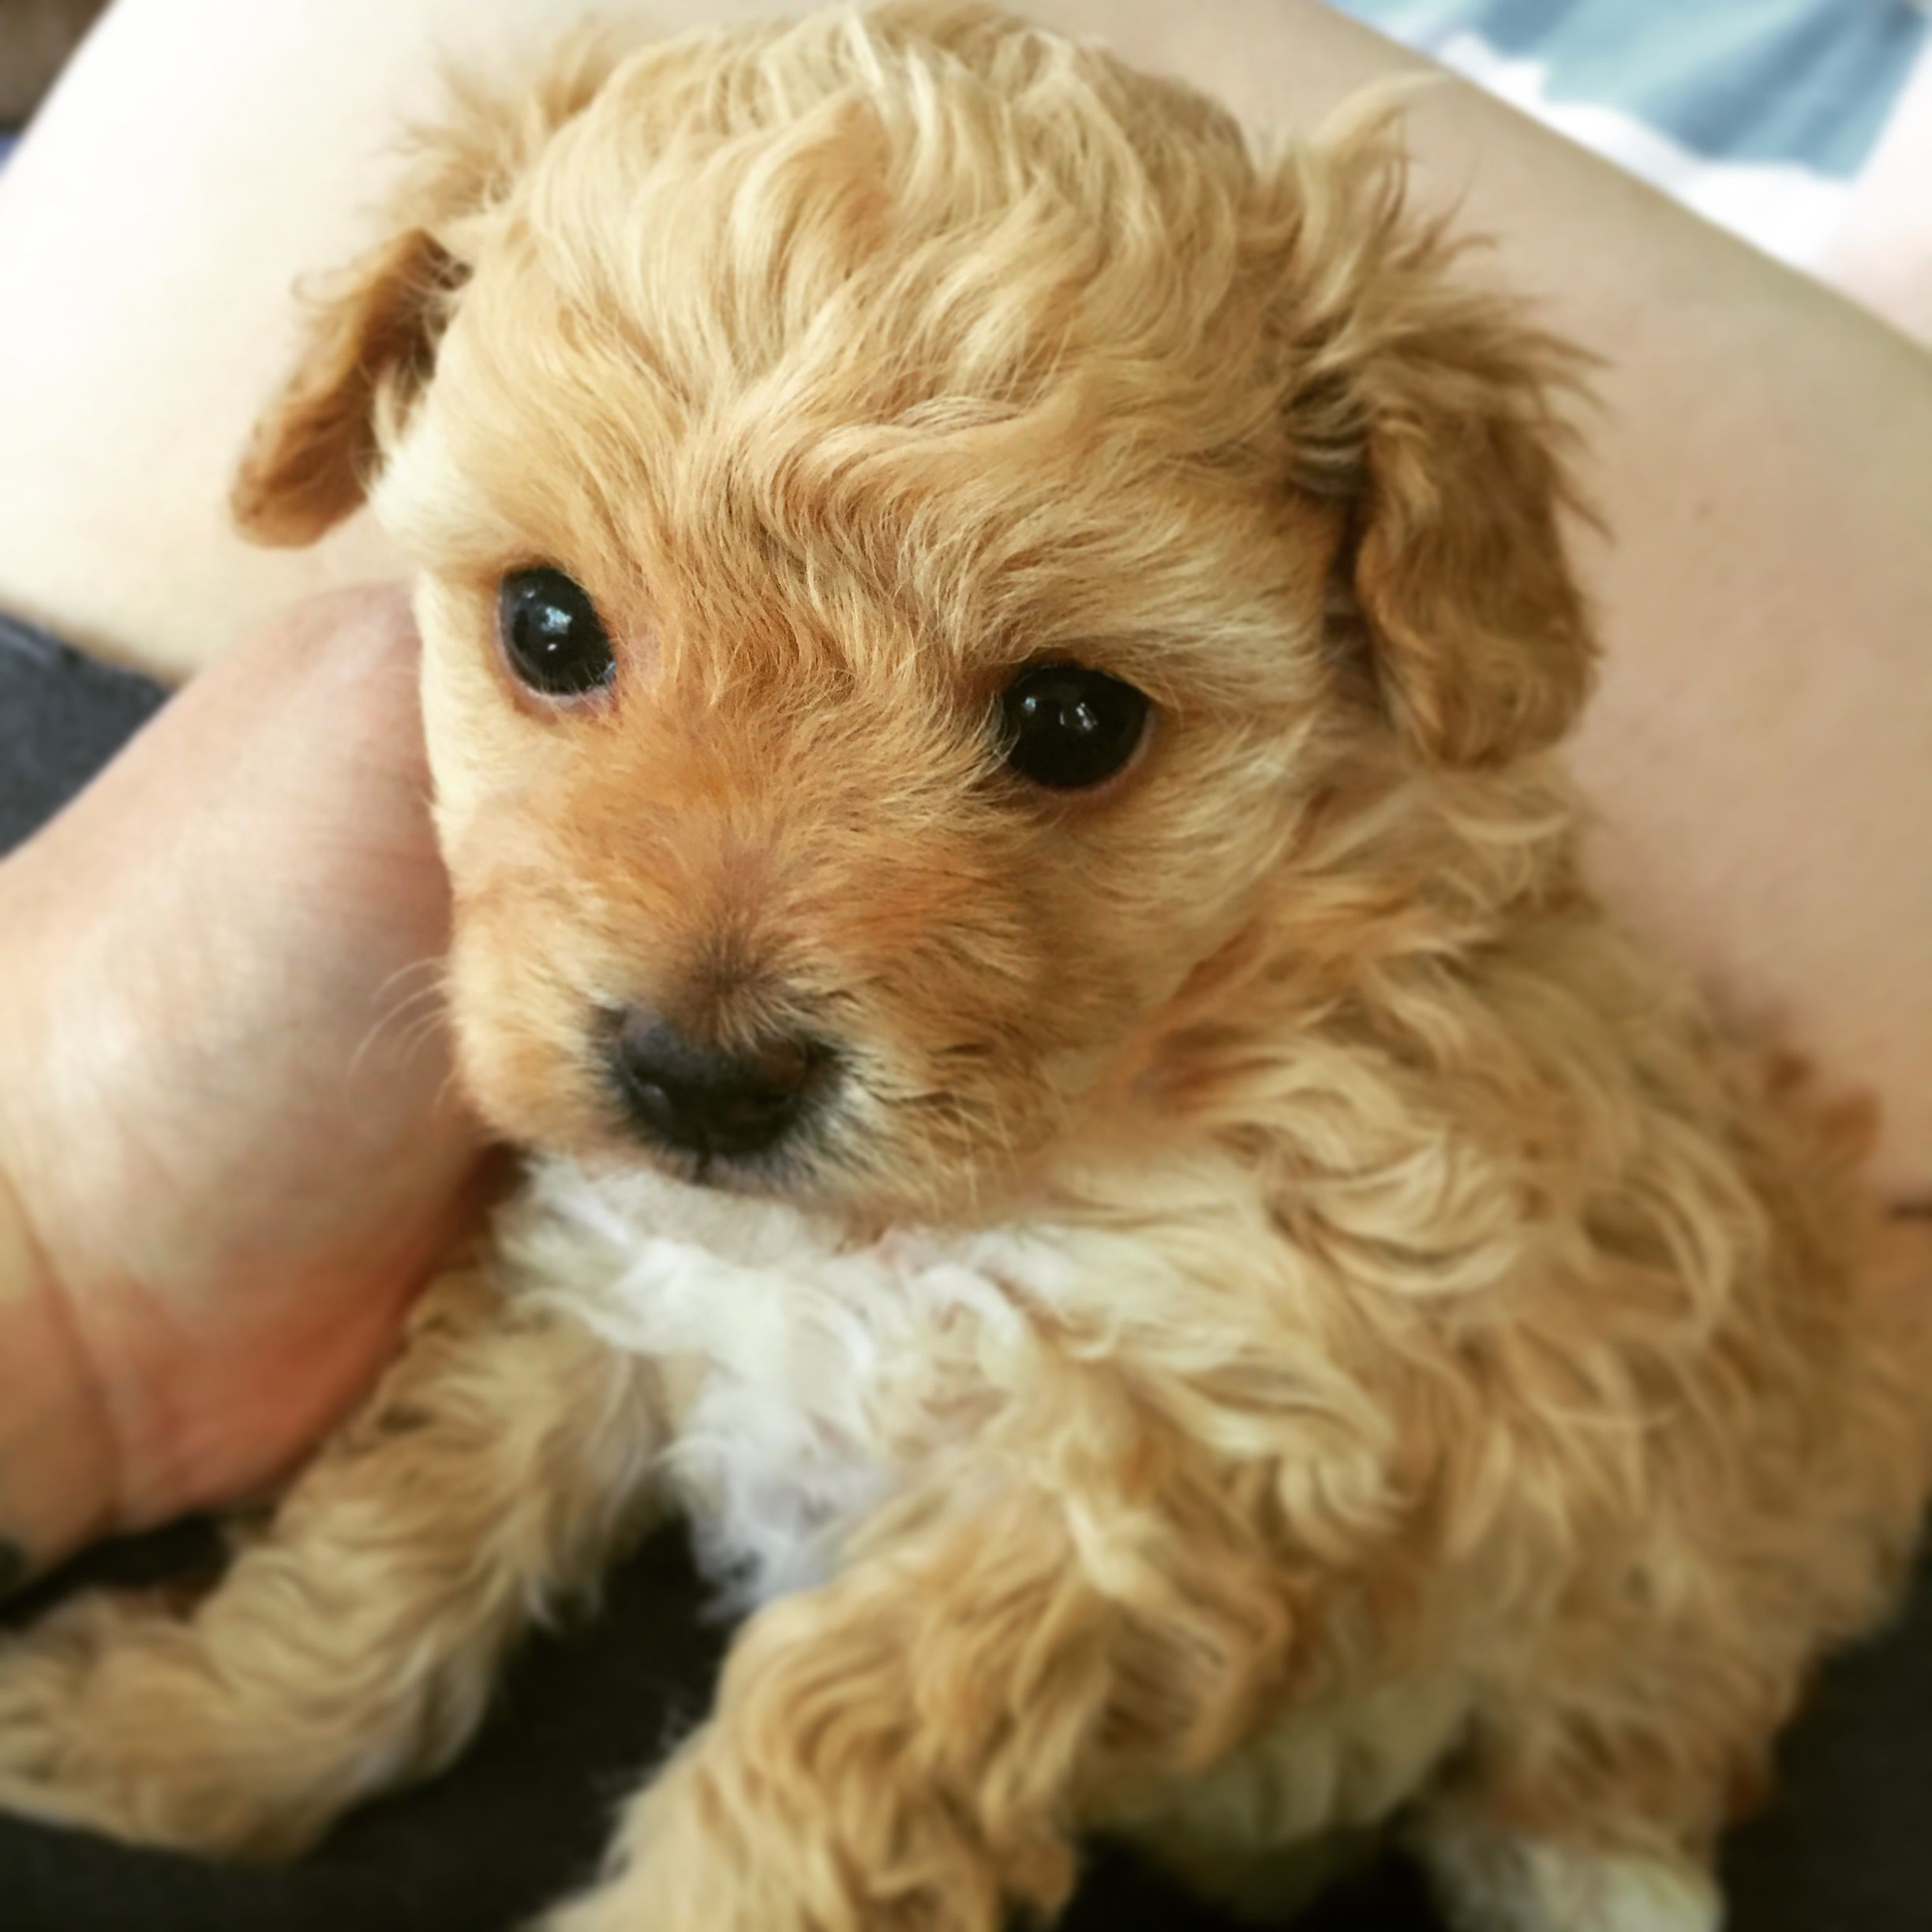 Teacup Poodle Baby Puppies Kitties Baby Puppies Toy Puppies